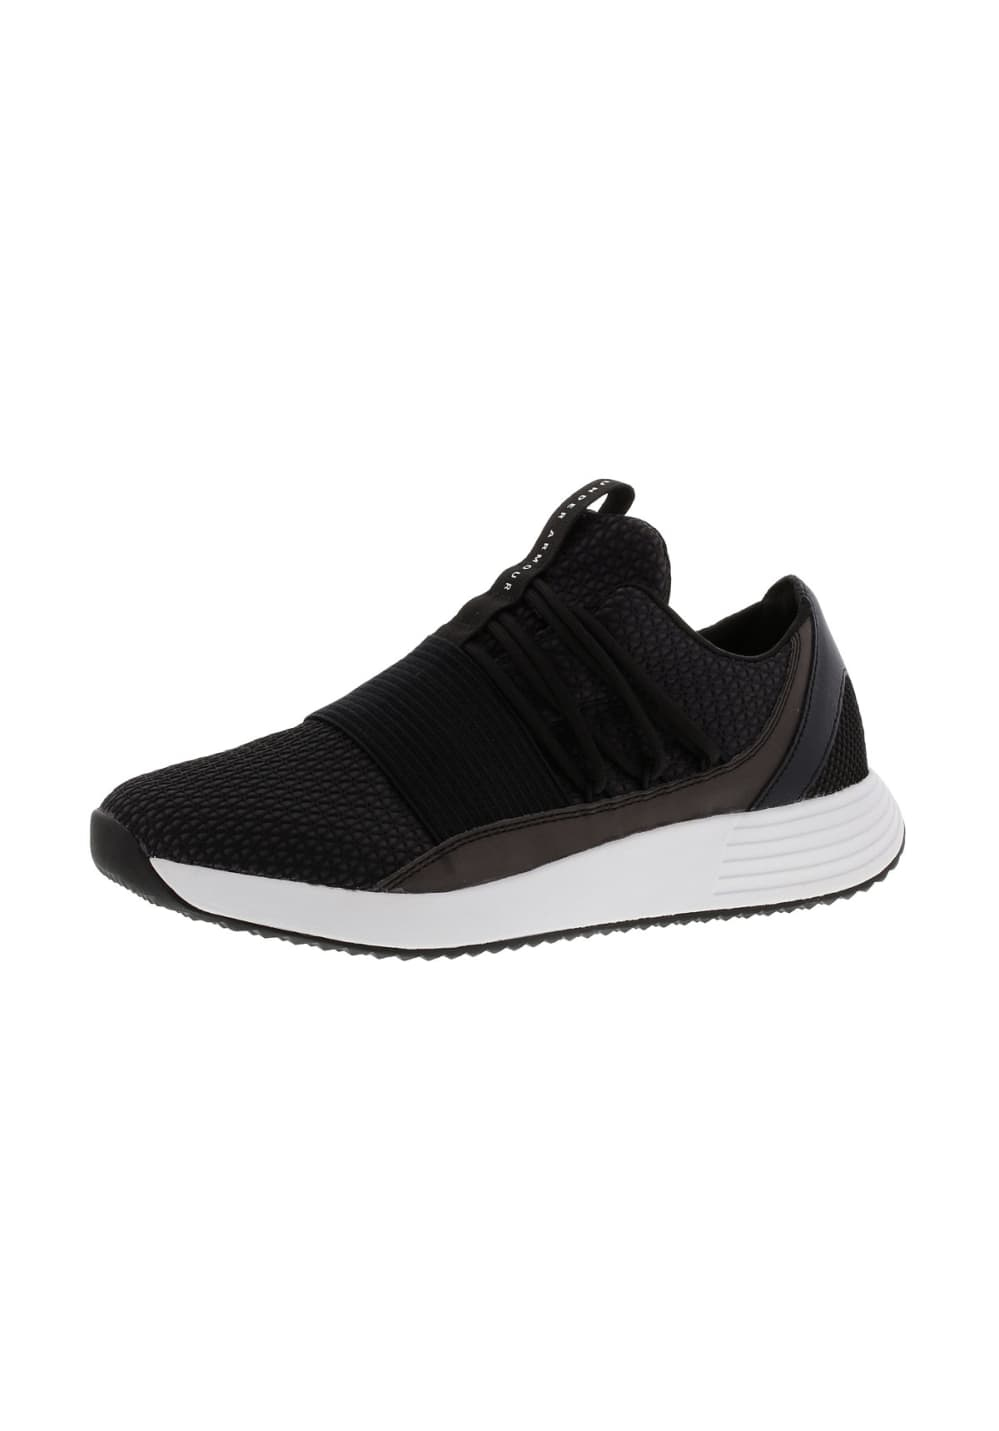 fb10b5f4 Under Armour Breathe Lace Reflective - Running shoes for Women - Black